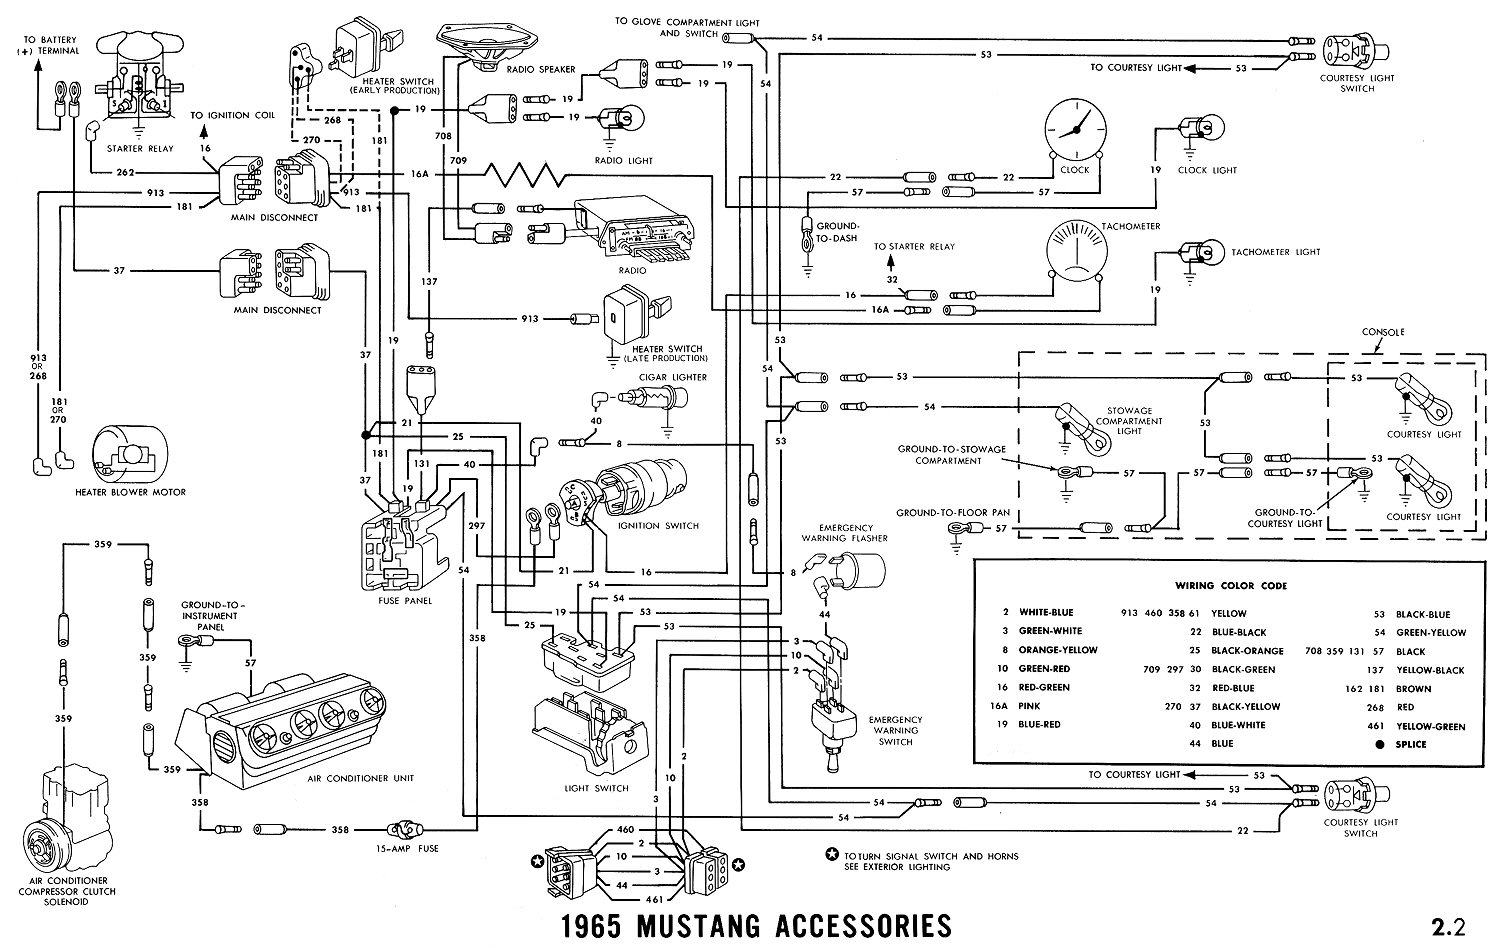 1965 Mustang Wiring Diagrams Average Joe Restoration 1953 Ford Diagram Pdf Accessories Pictorial Or Schematic Air Conditioner